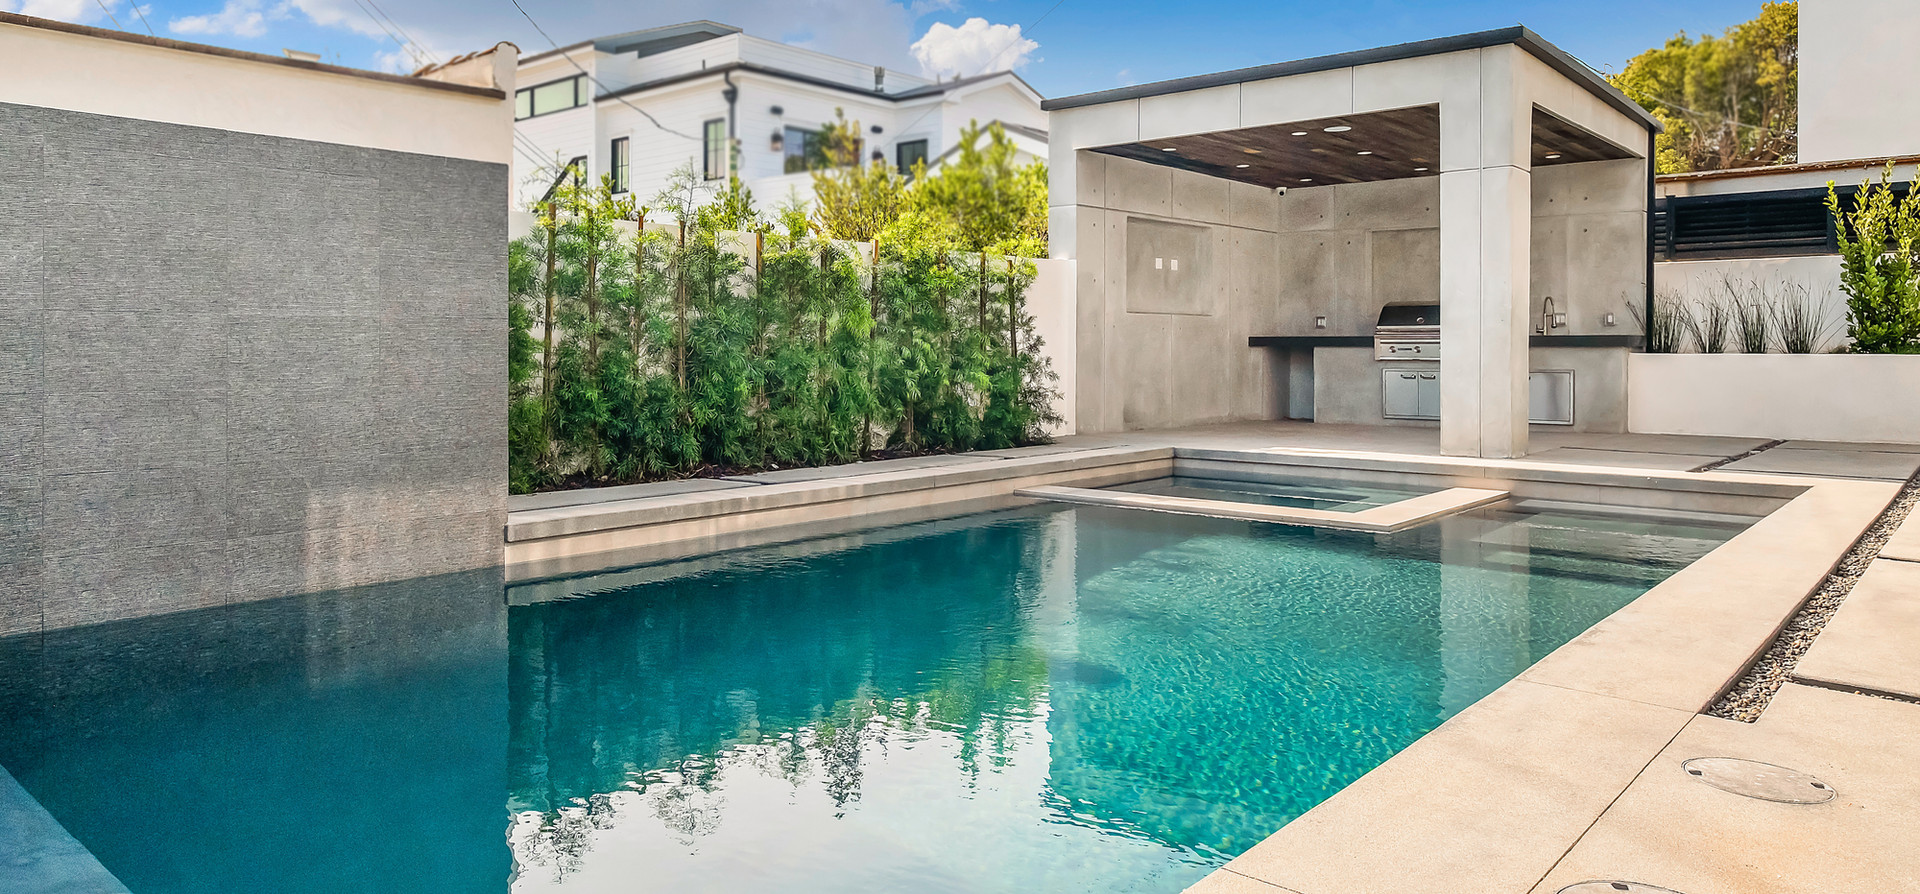 Concrete Decking and Pool Installation